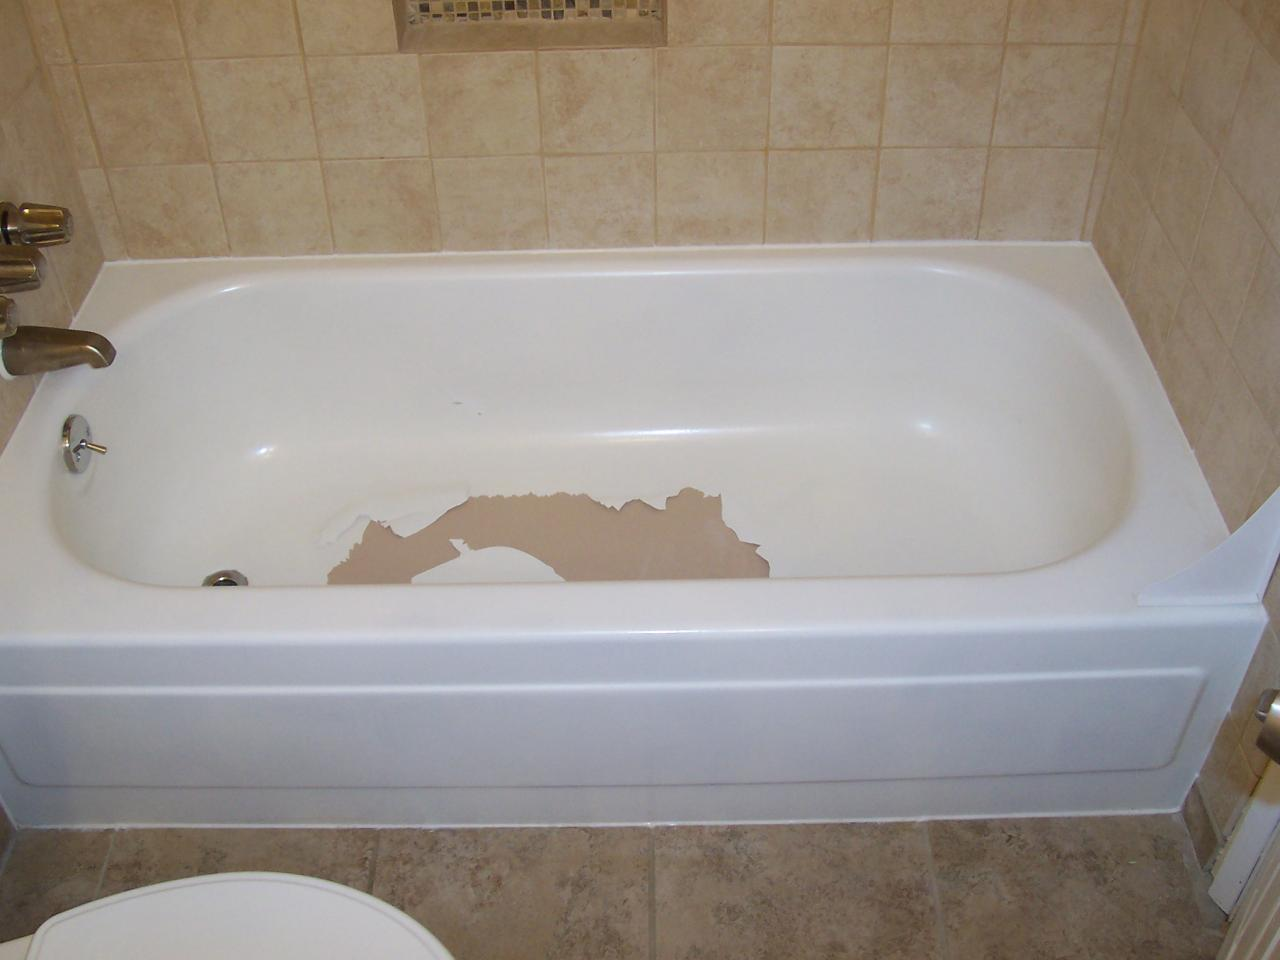 Bad Reglaze? - Denver Tub and Bathroom Repairs